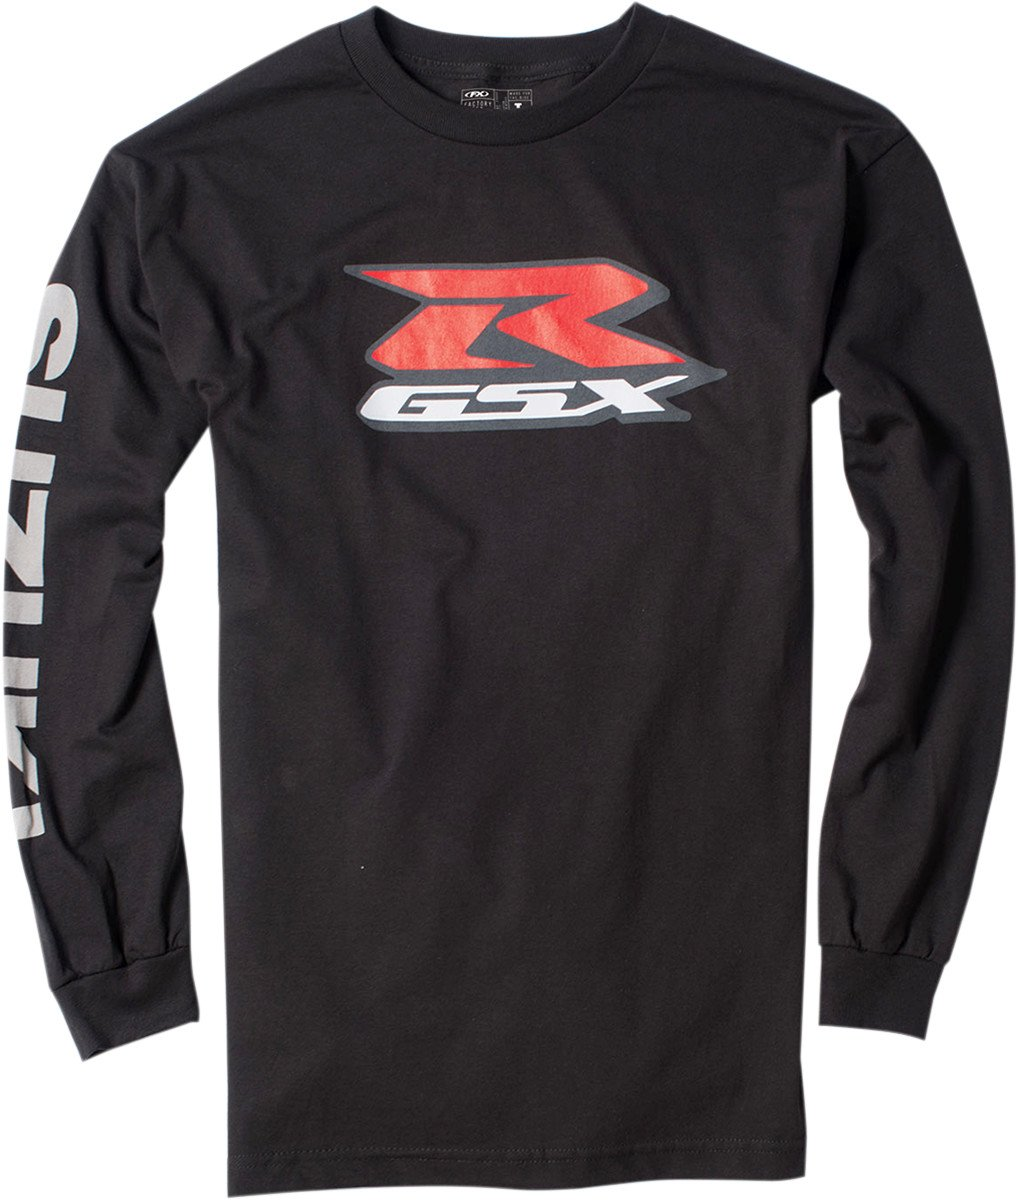 Factory Effex 17-87412 'SUZUKI' Long Sleeve T-Shirt (Black, Medium)